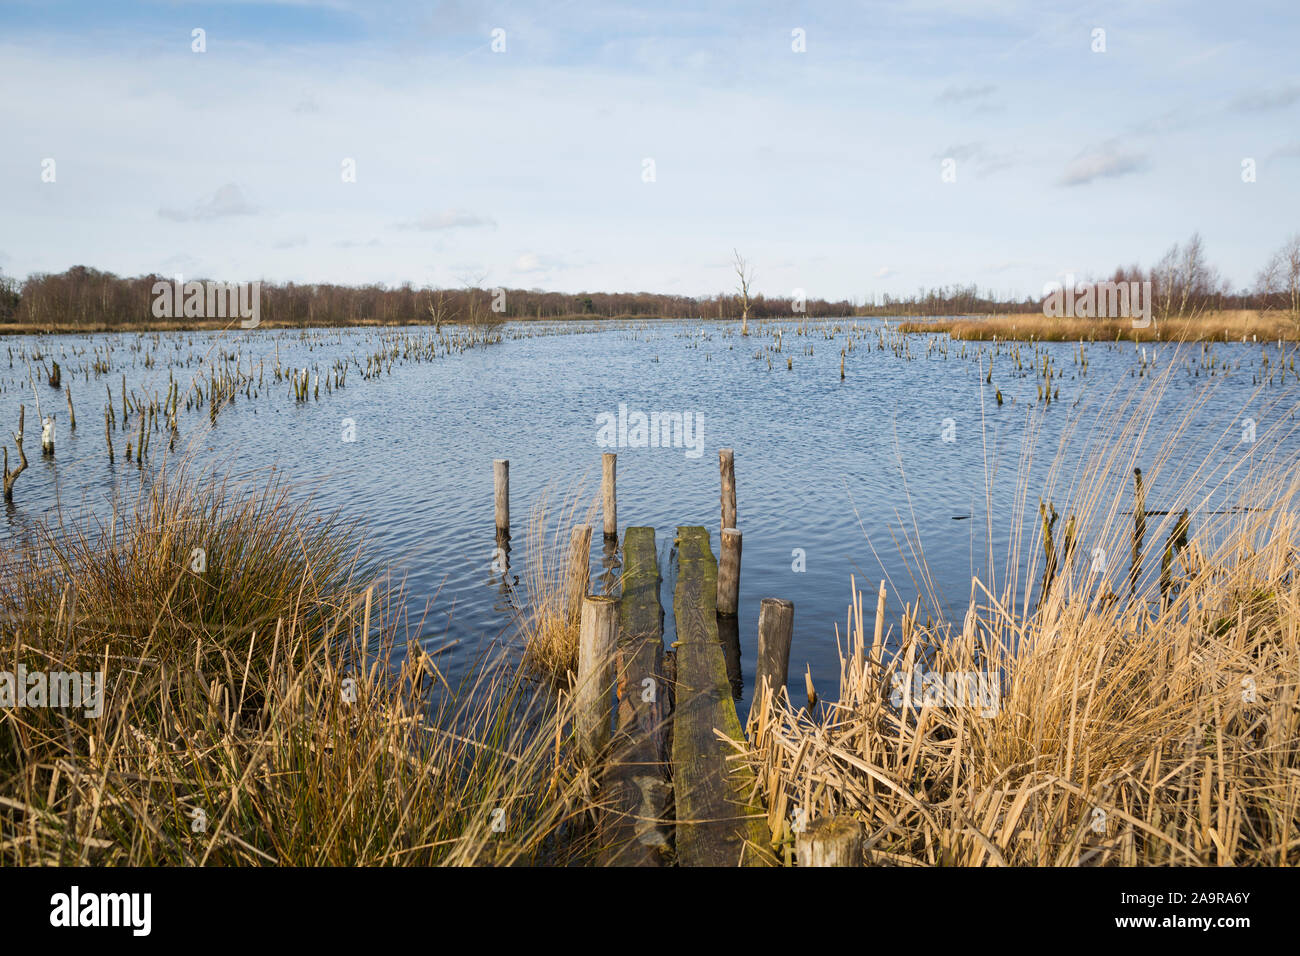 """Stumps of dead trees at wetland nature reserve """"Mariapeel"""" with raised water level, nature being restored in the Netherlands Stock Photo"""